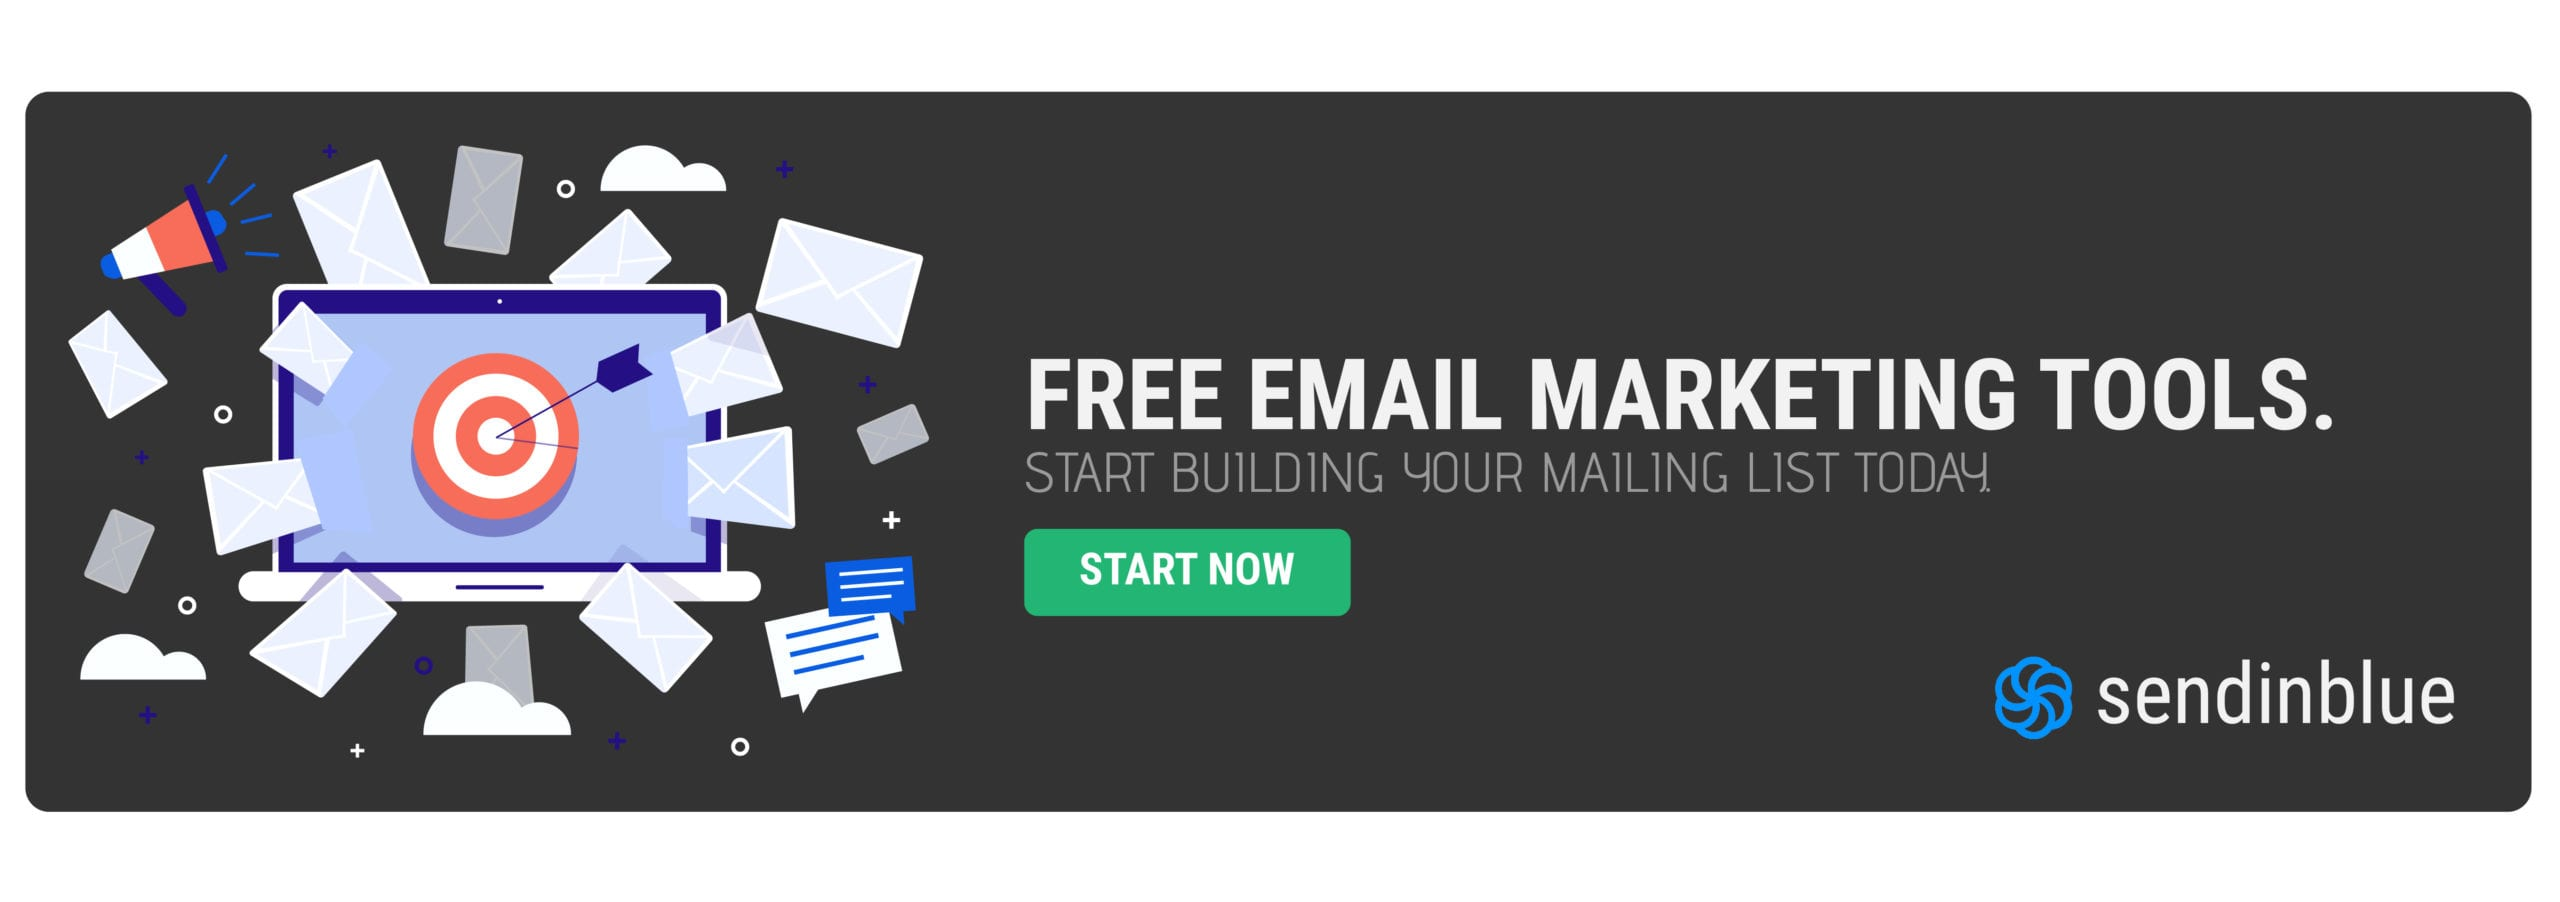 Email Marketing Tools Banner.